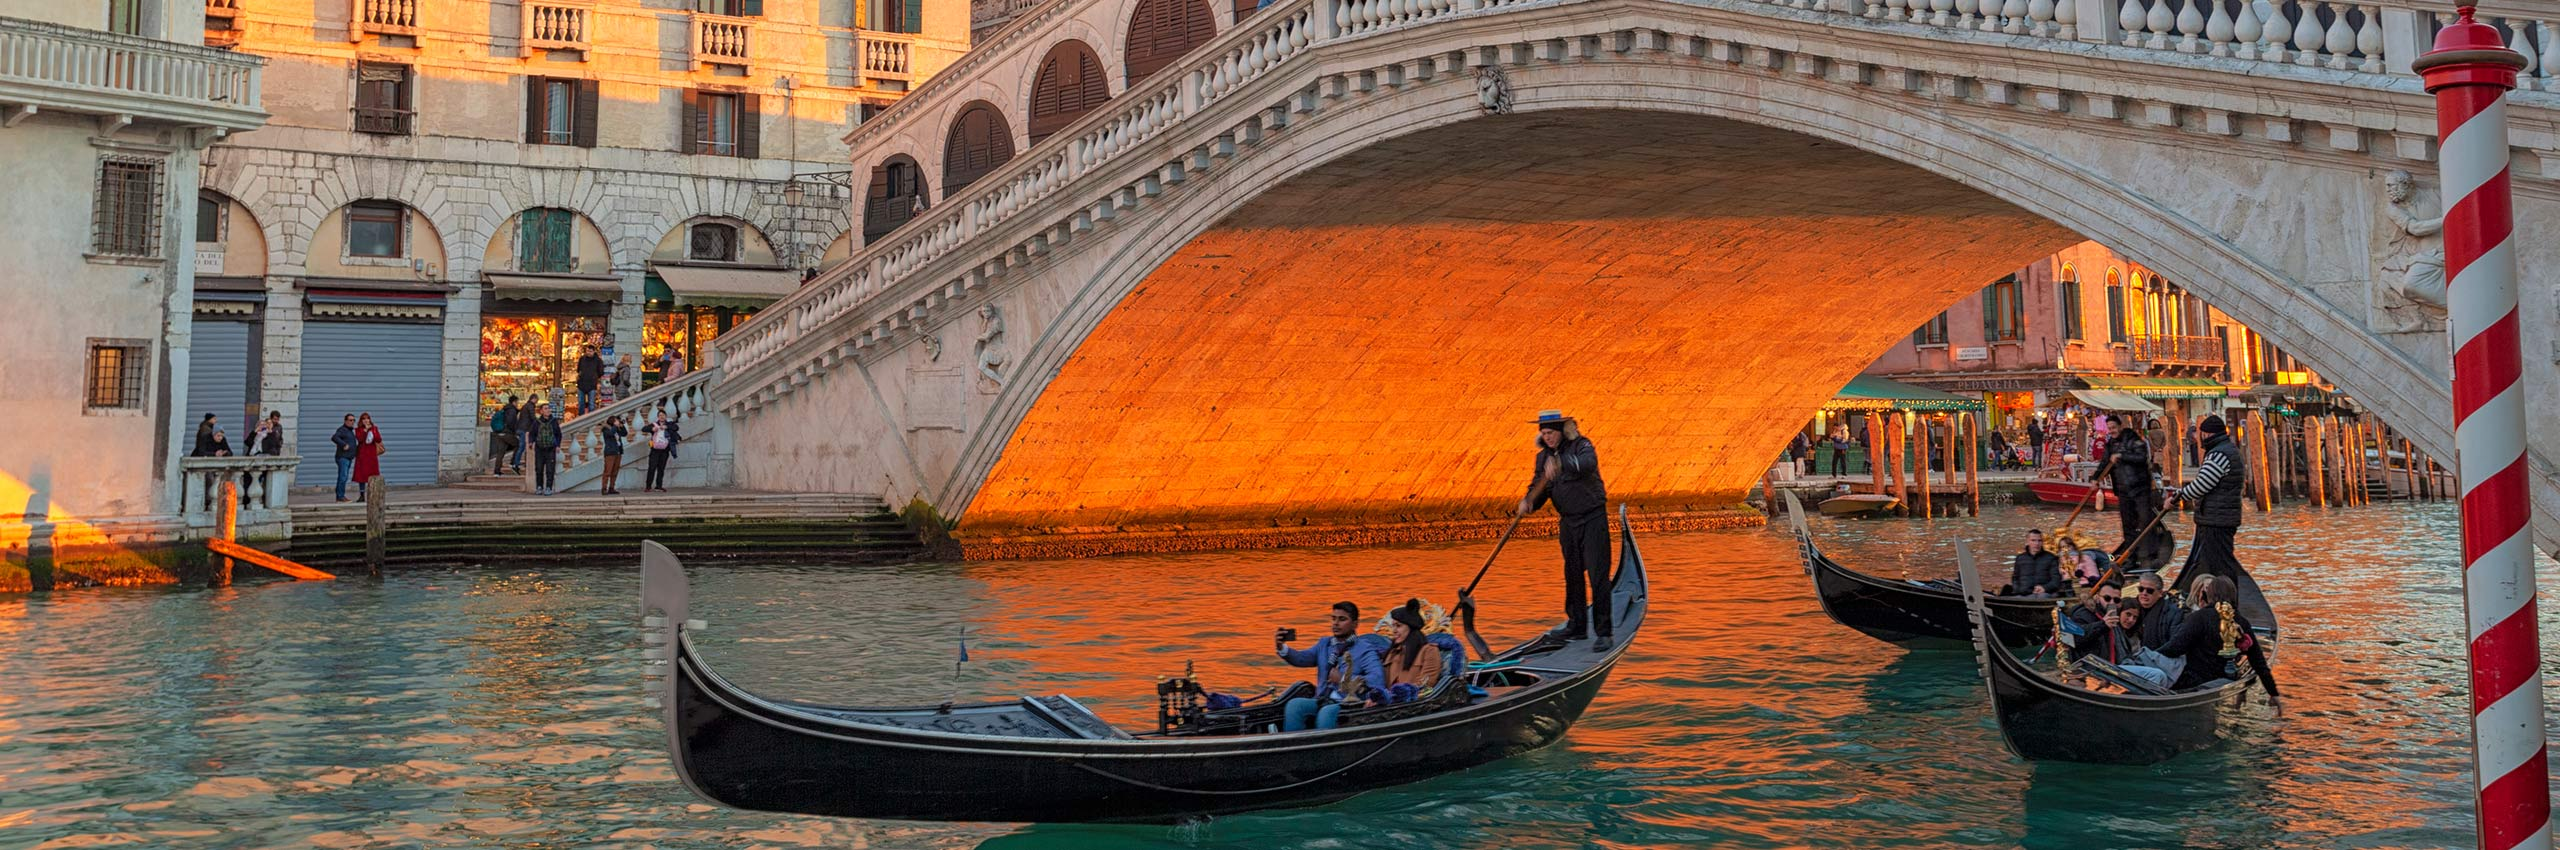 SIM-514107 | Italy/Veneto, Venezia district, Venice, Rialto Bridge | © Diego Cuzzolin/4Corners